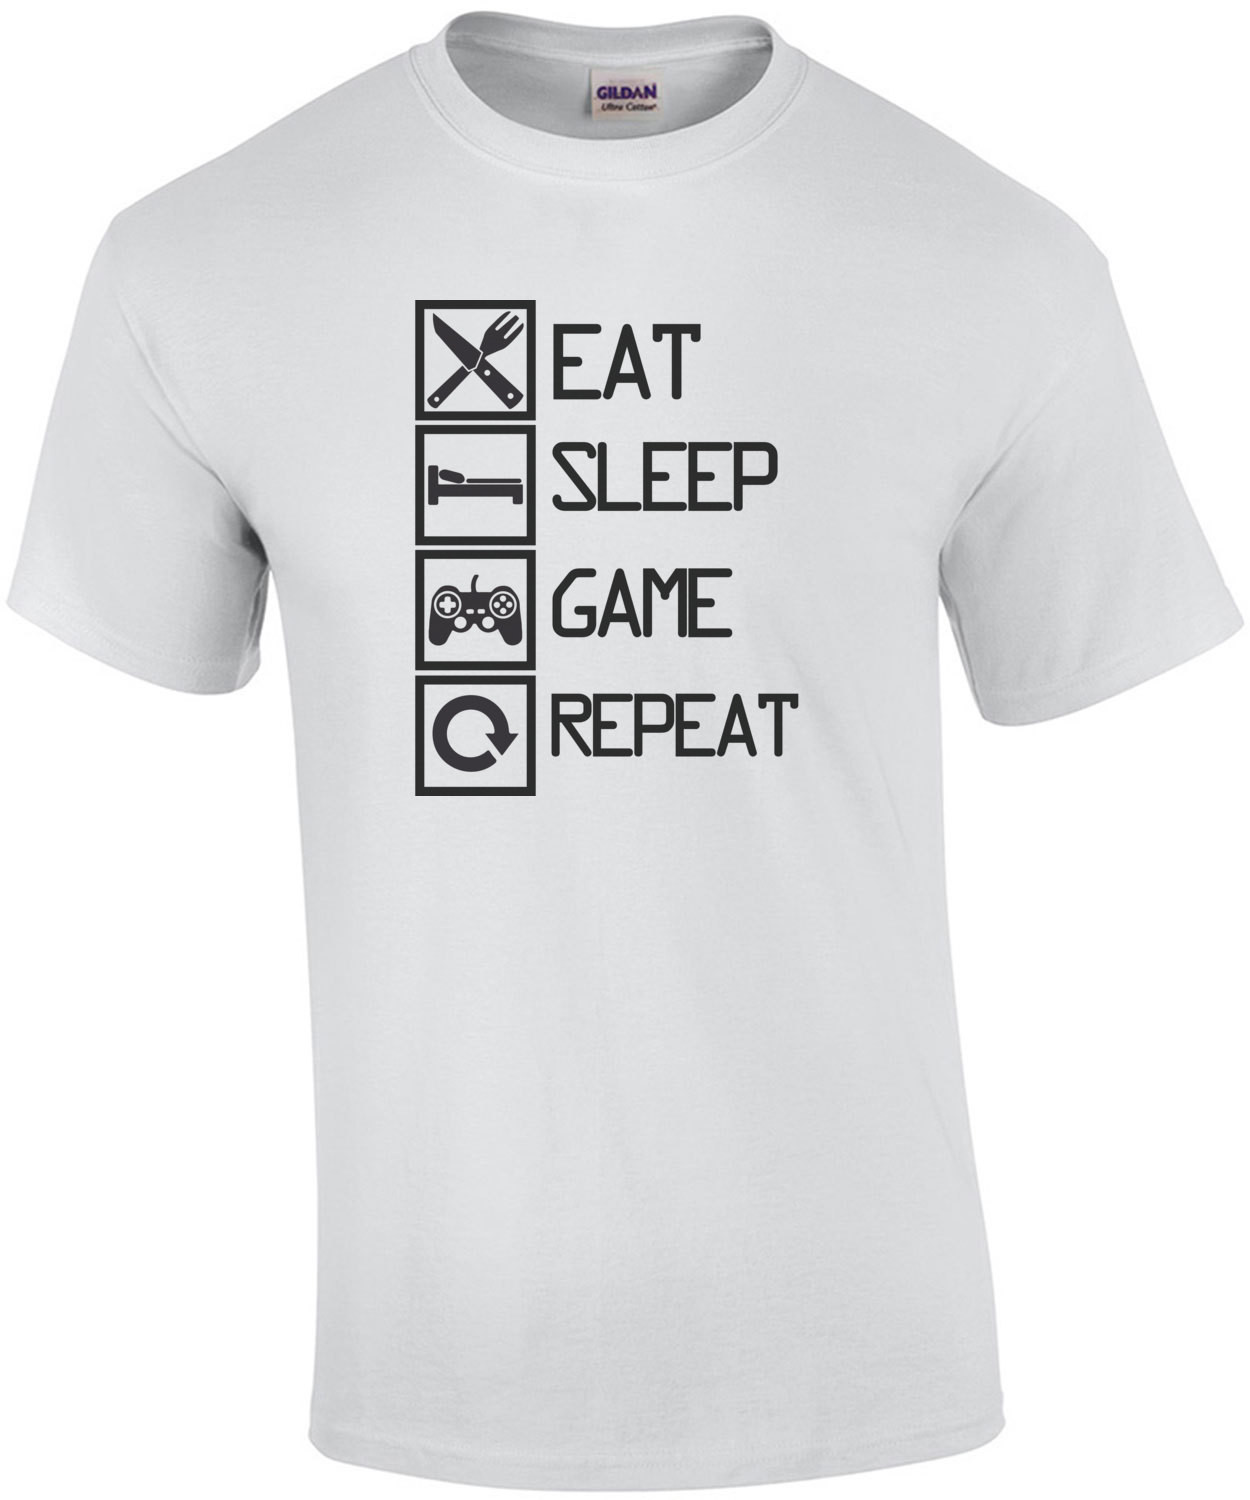 eat sleep game repeat - gaming t-shirt